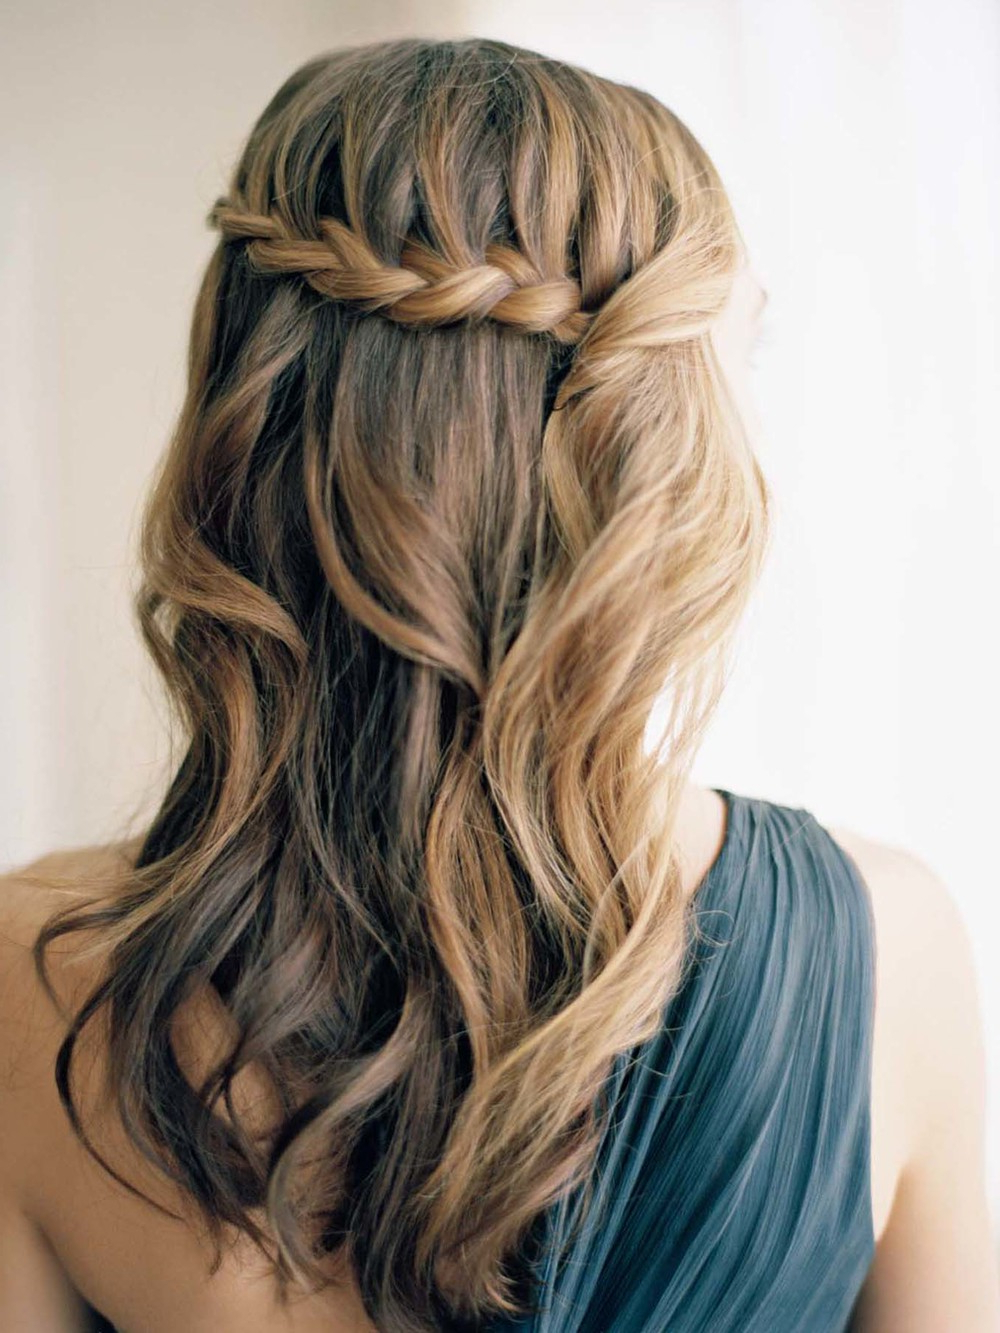 10 Bridal Hairstyle Ideas For Fine Hair – Hair World Magazine With Most Popular Braided Wedding Hairstyles With Subtle Waves (Gallery 13 of 20)